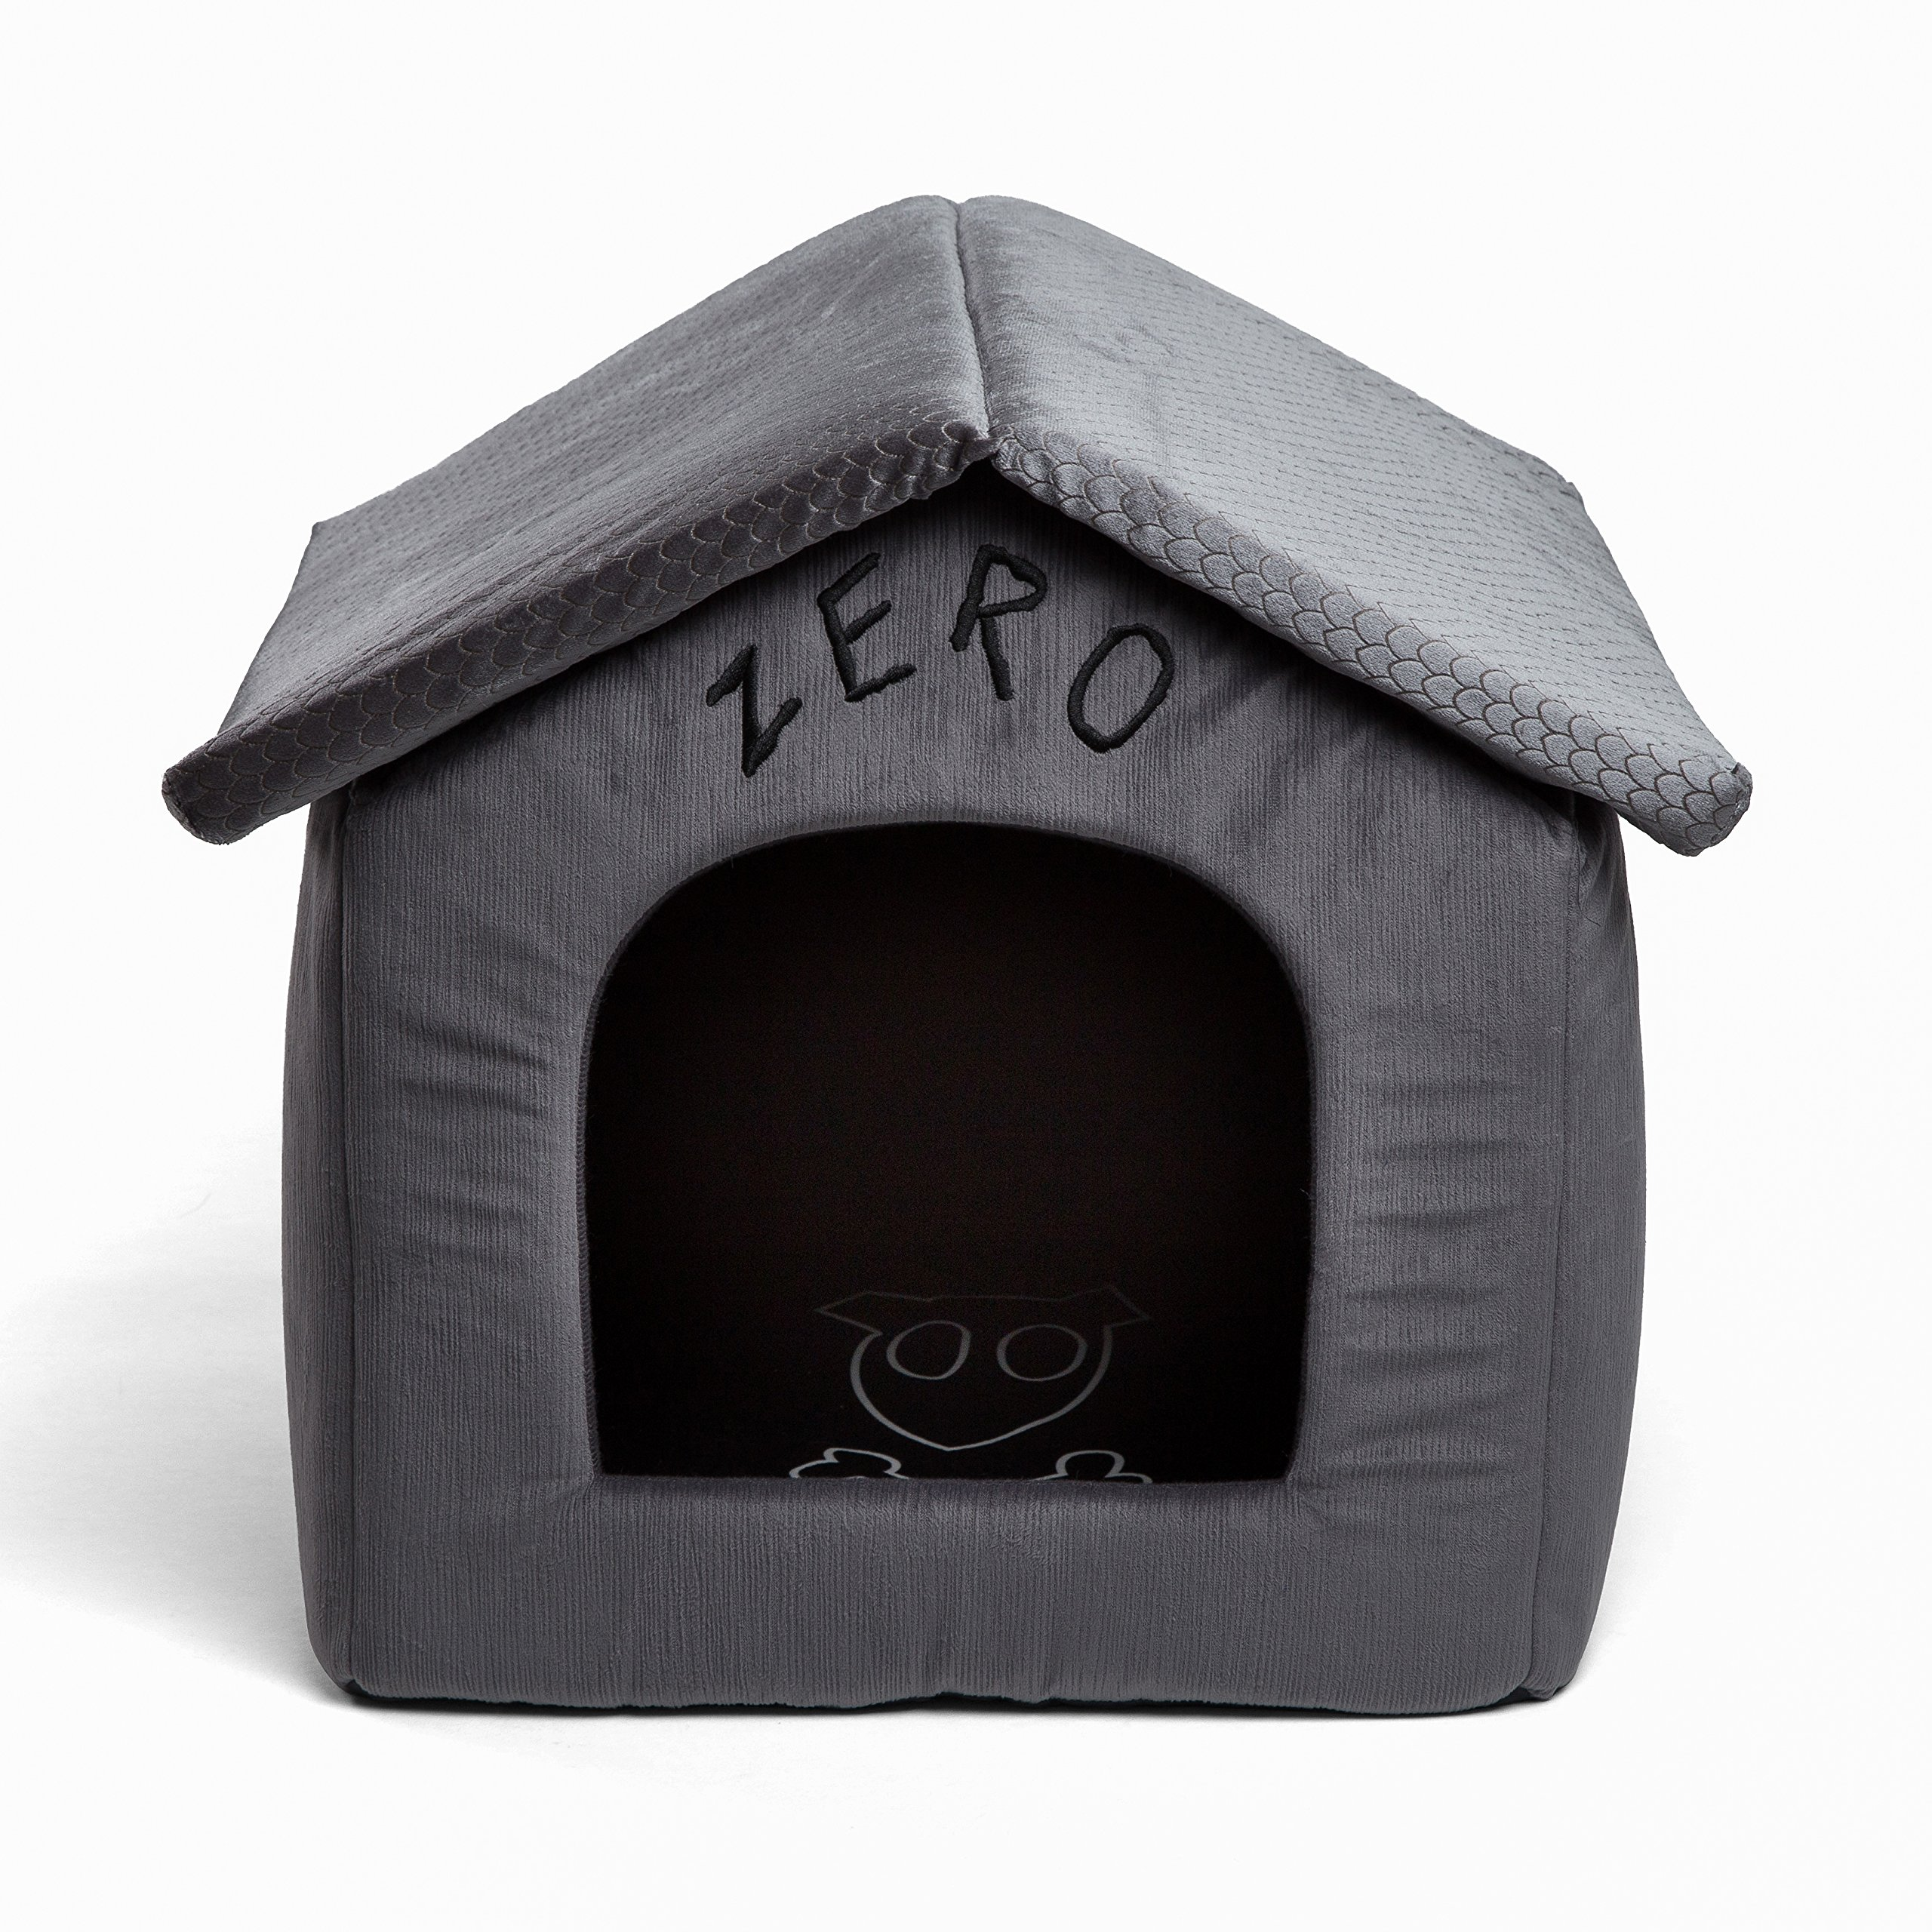 Disney Nightmare Before Christmas Zero Portable Pet House Dog Bed/Cat Bed with Detachable Top, Embroidery, Machine Washable, Dirt/Water Resistant Bottom (Available in Two Sizes) by Disney (Image #1)